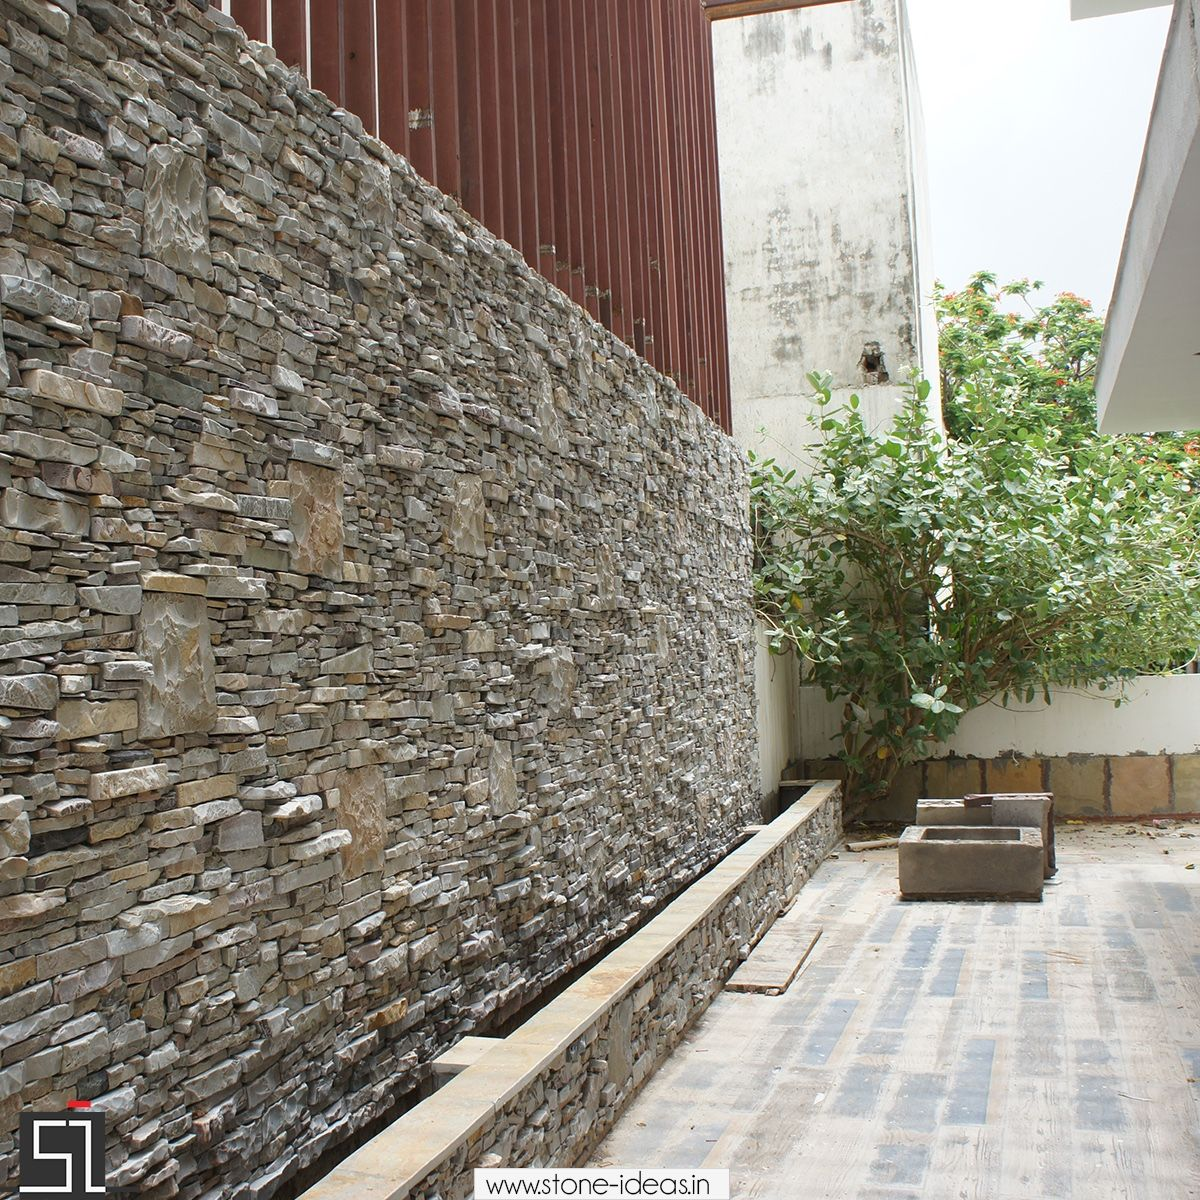 boundary wall design in stone stone